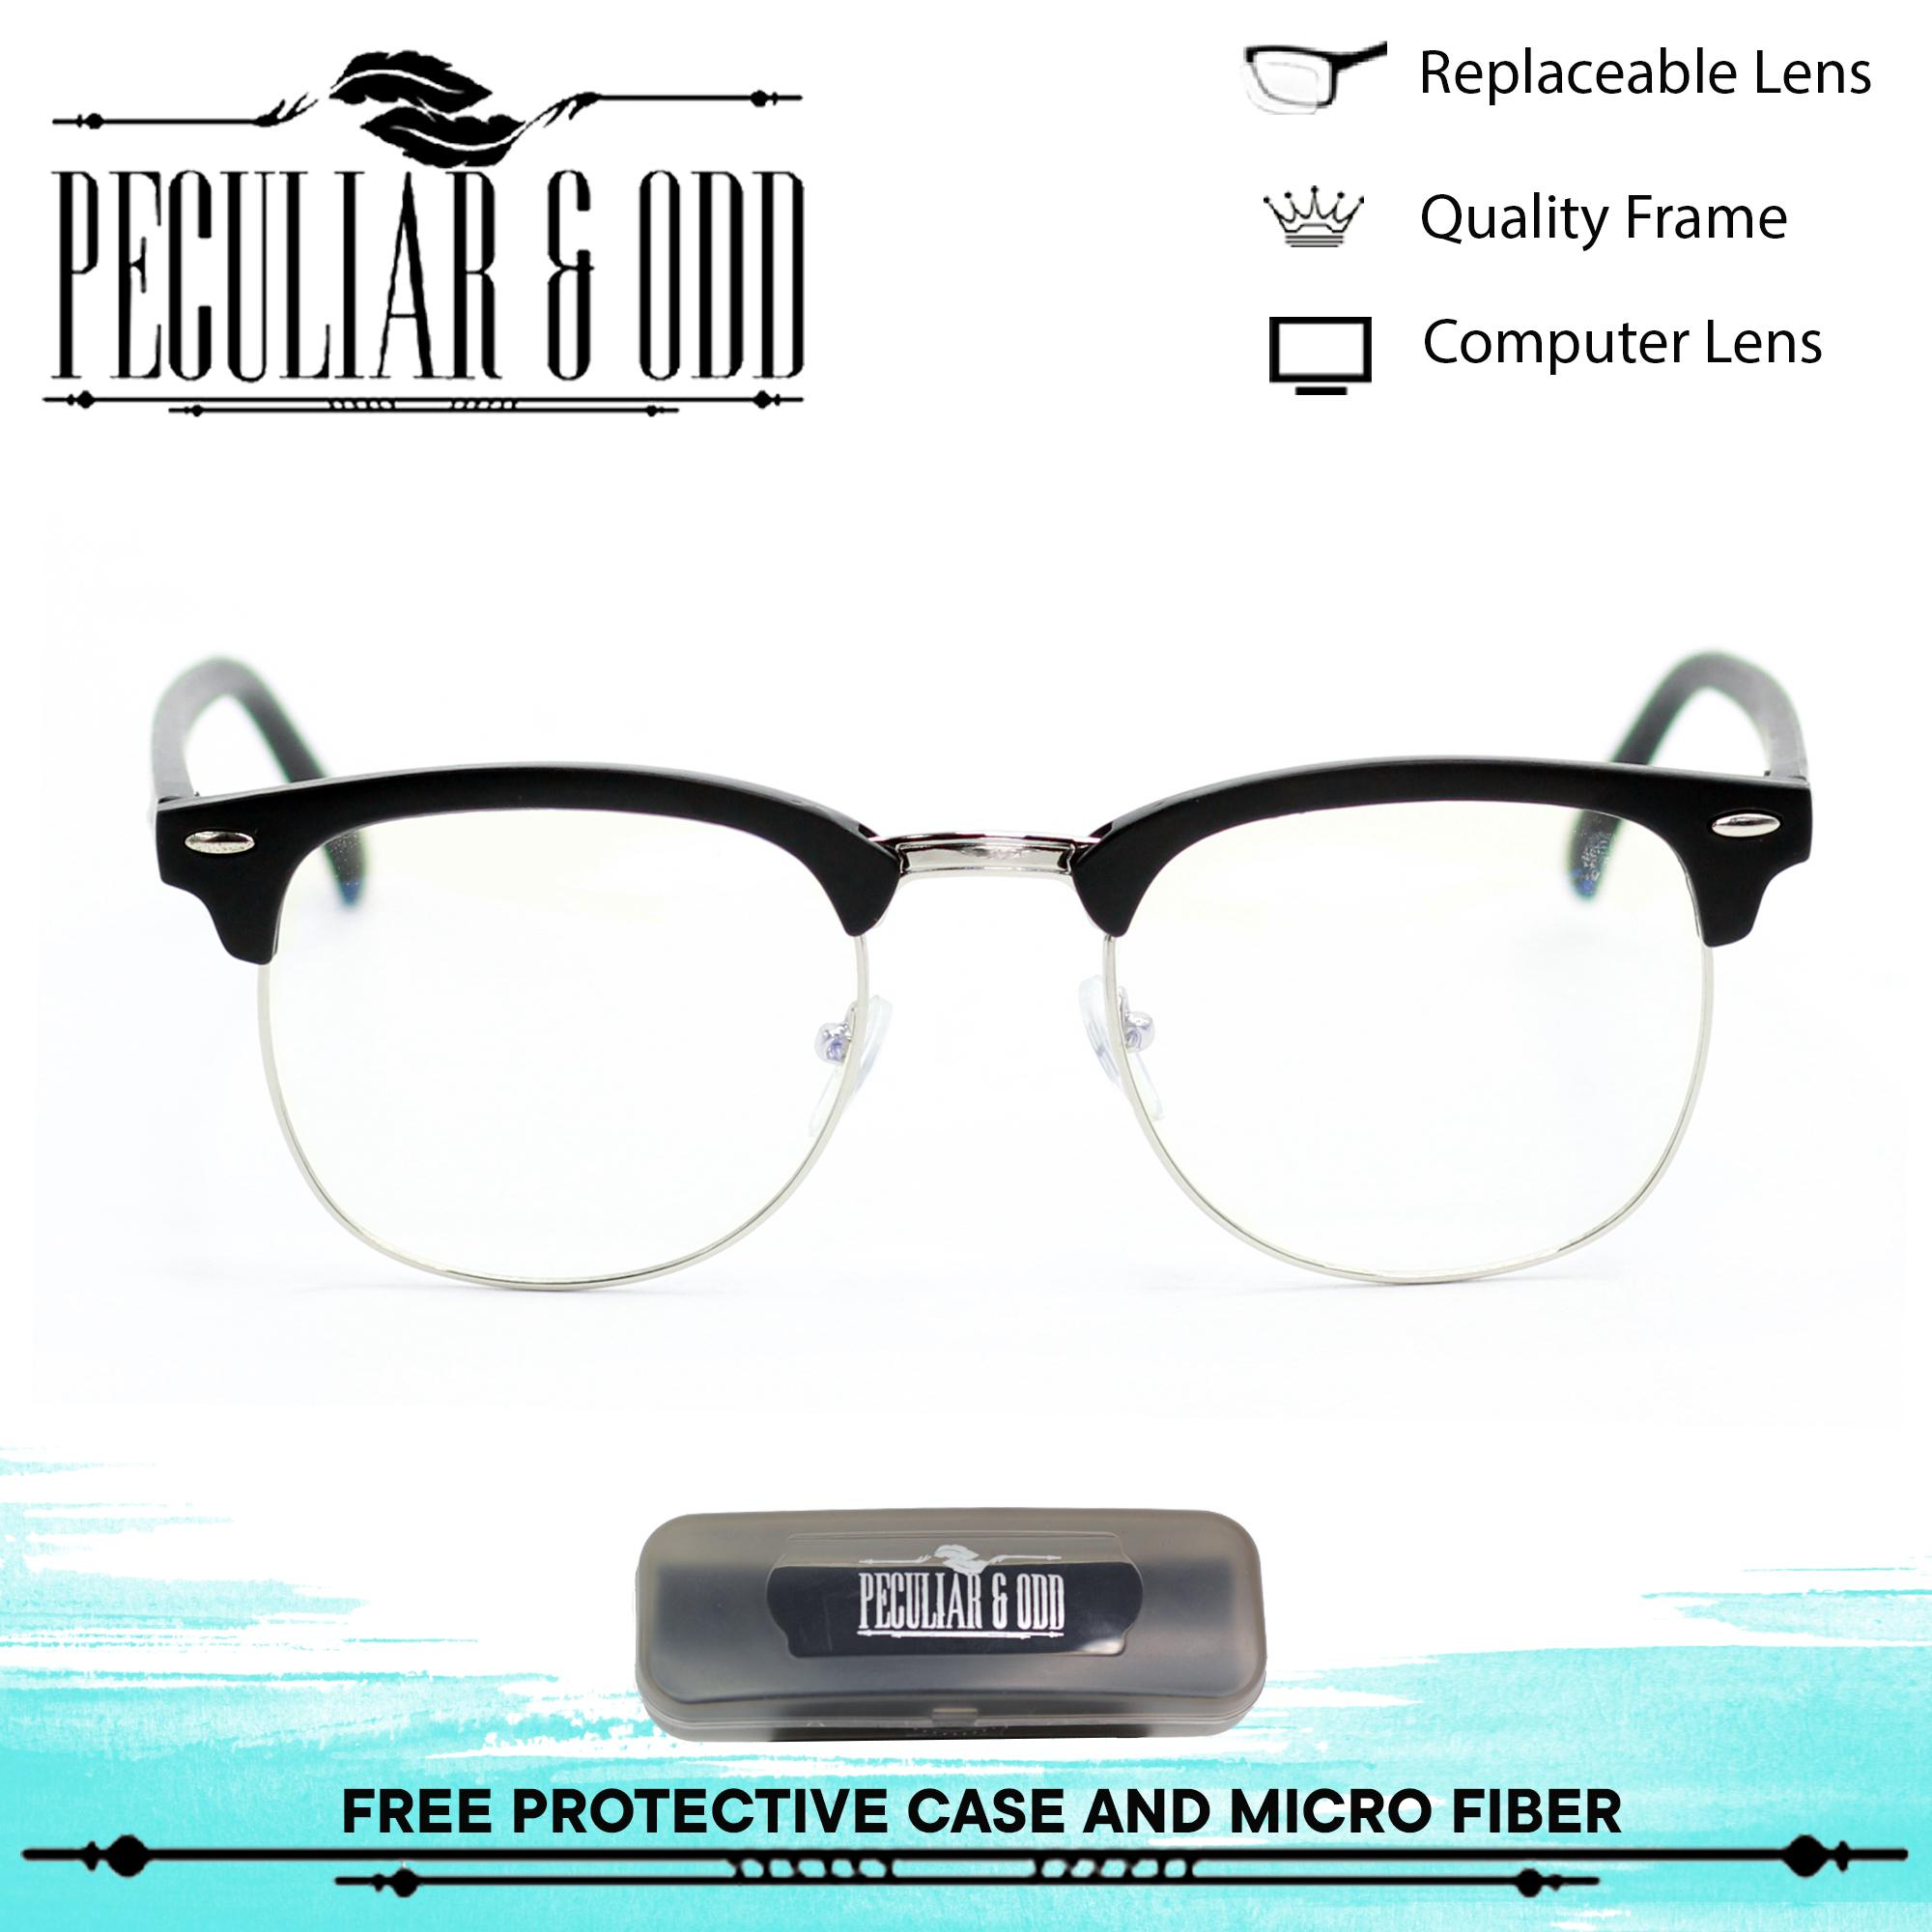 7c75a8133cc Peculiar Clubmaster Eyeglass 1365 Livid Unisex Computer Eyeglasses Anti  Radiation   Gaming   Gadget   Computer Replaceable Lens Optical Frame Blue  ...